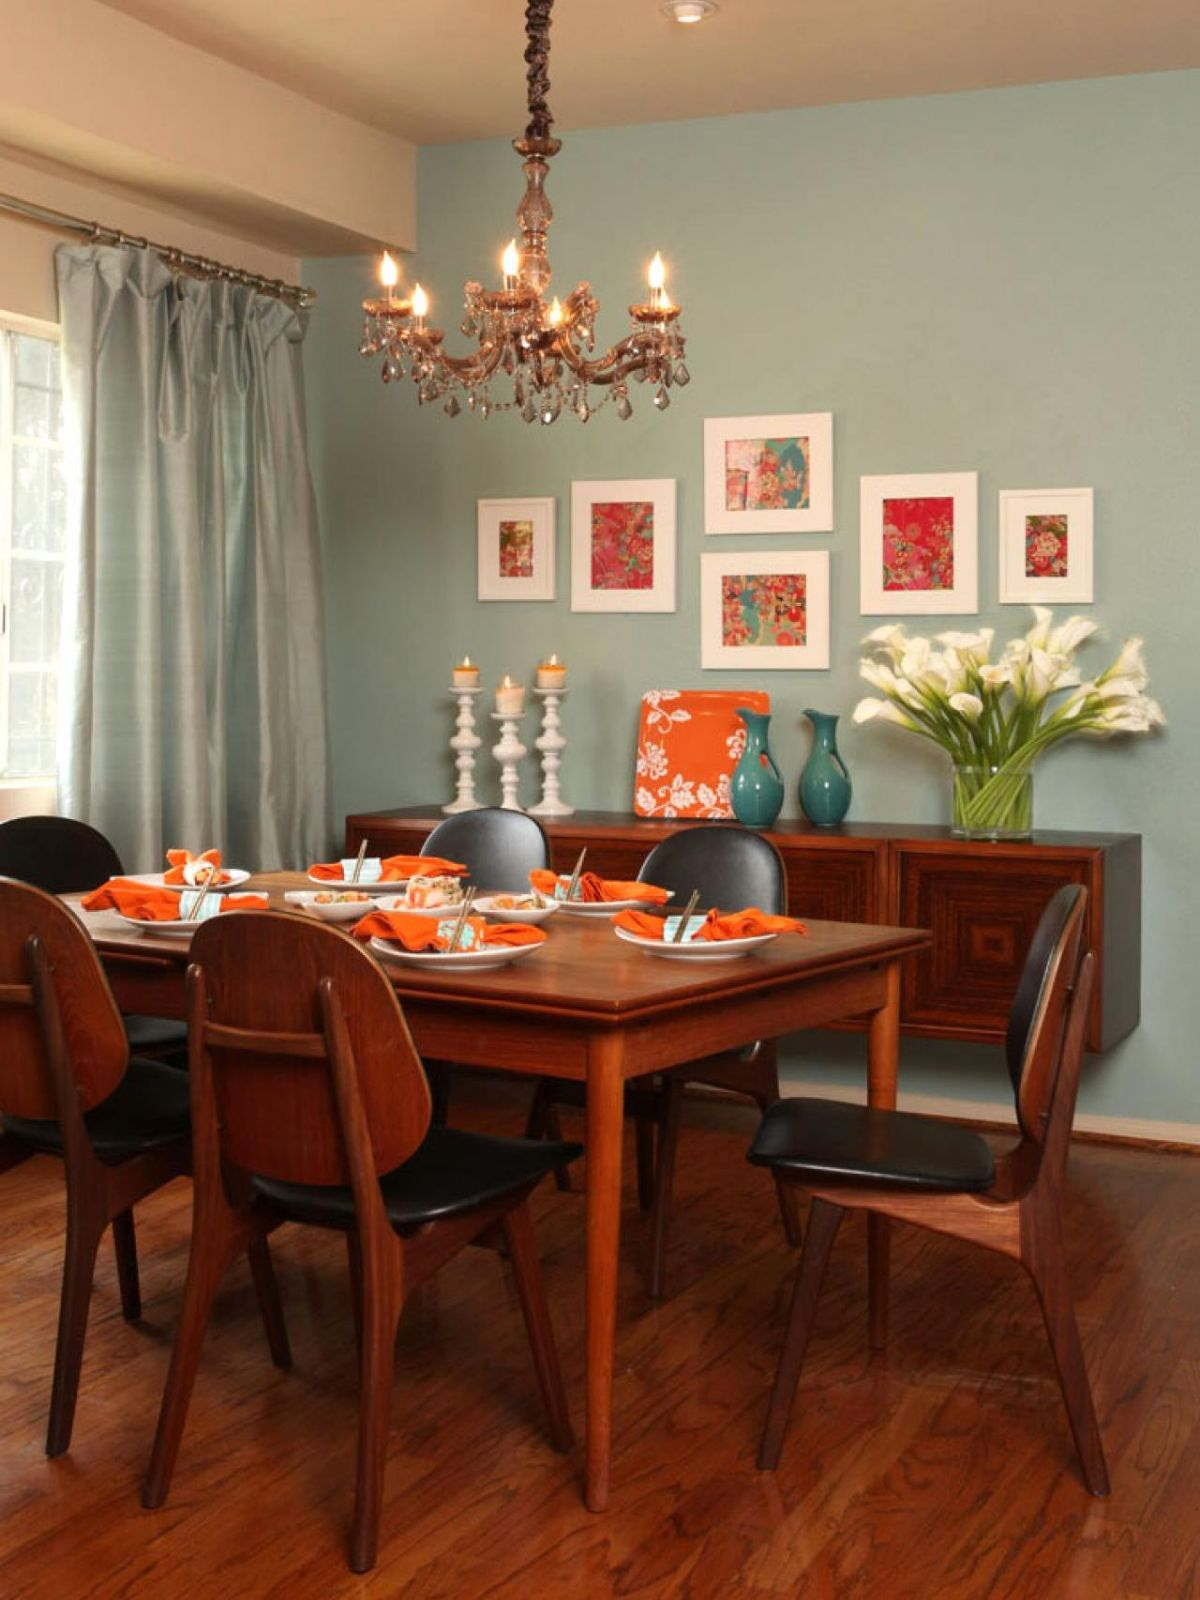 Using Color In The Feng Shui Dining Room Orange Dining Room